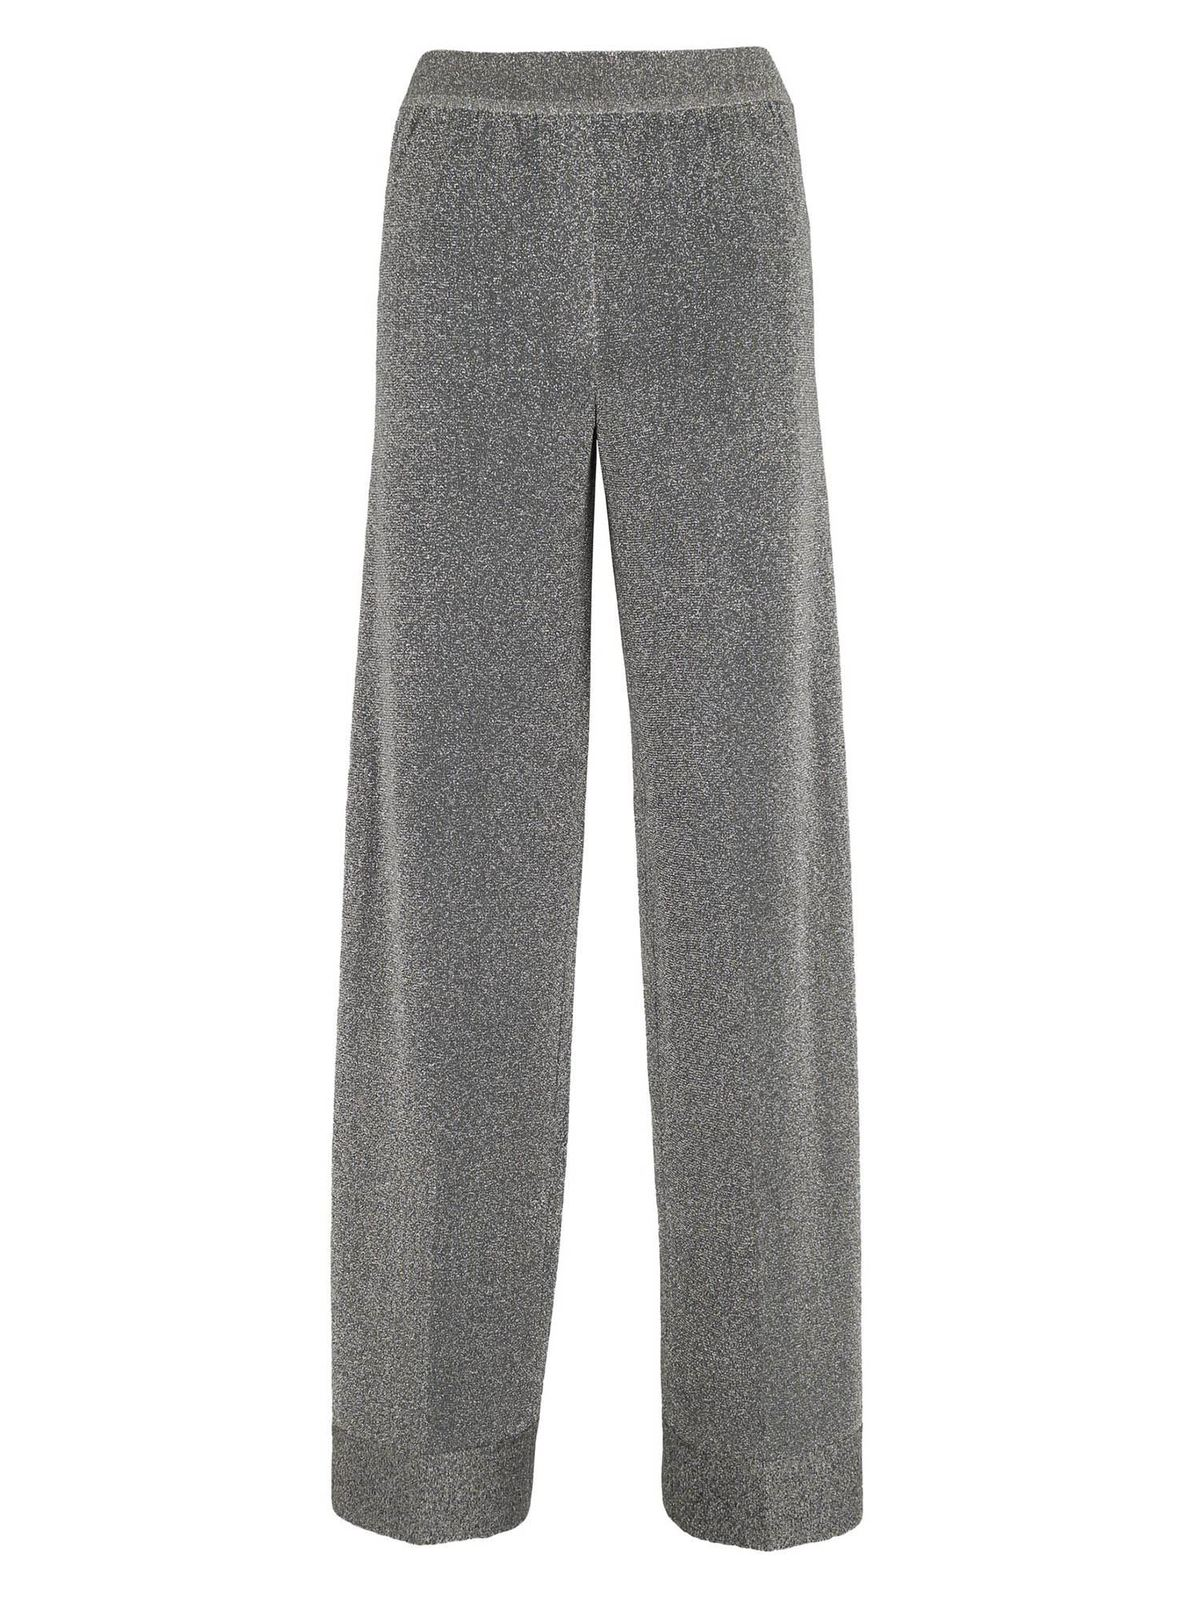 Missoni LAME PALAZZO PANTS IN SILVER